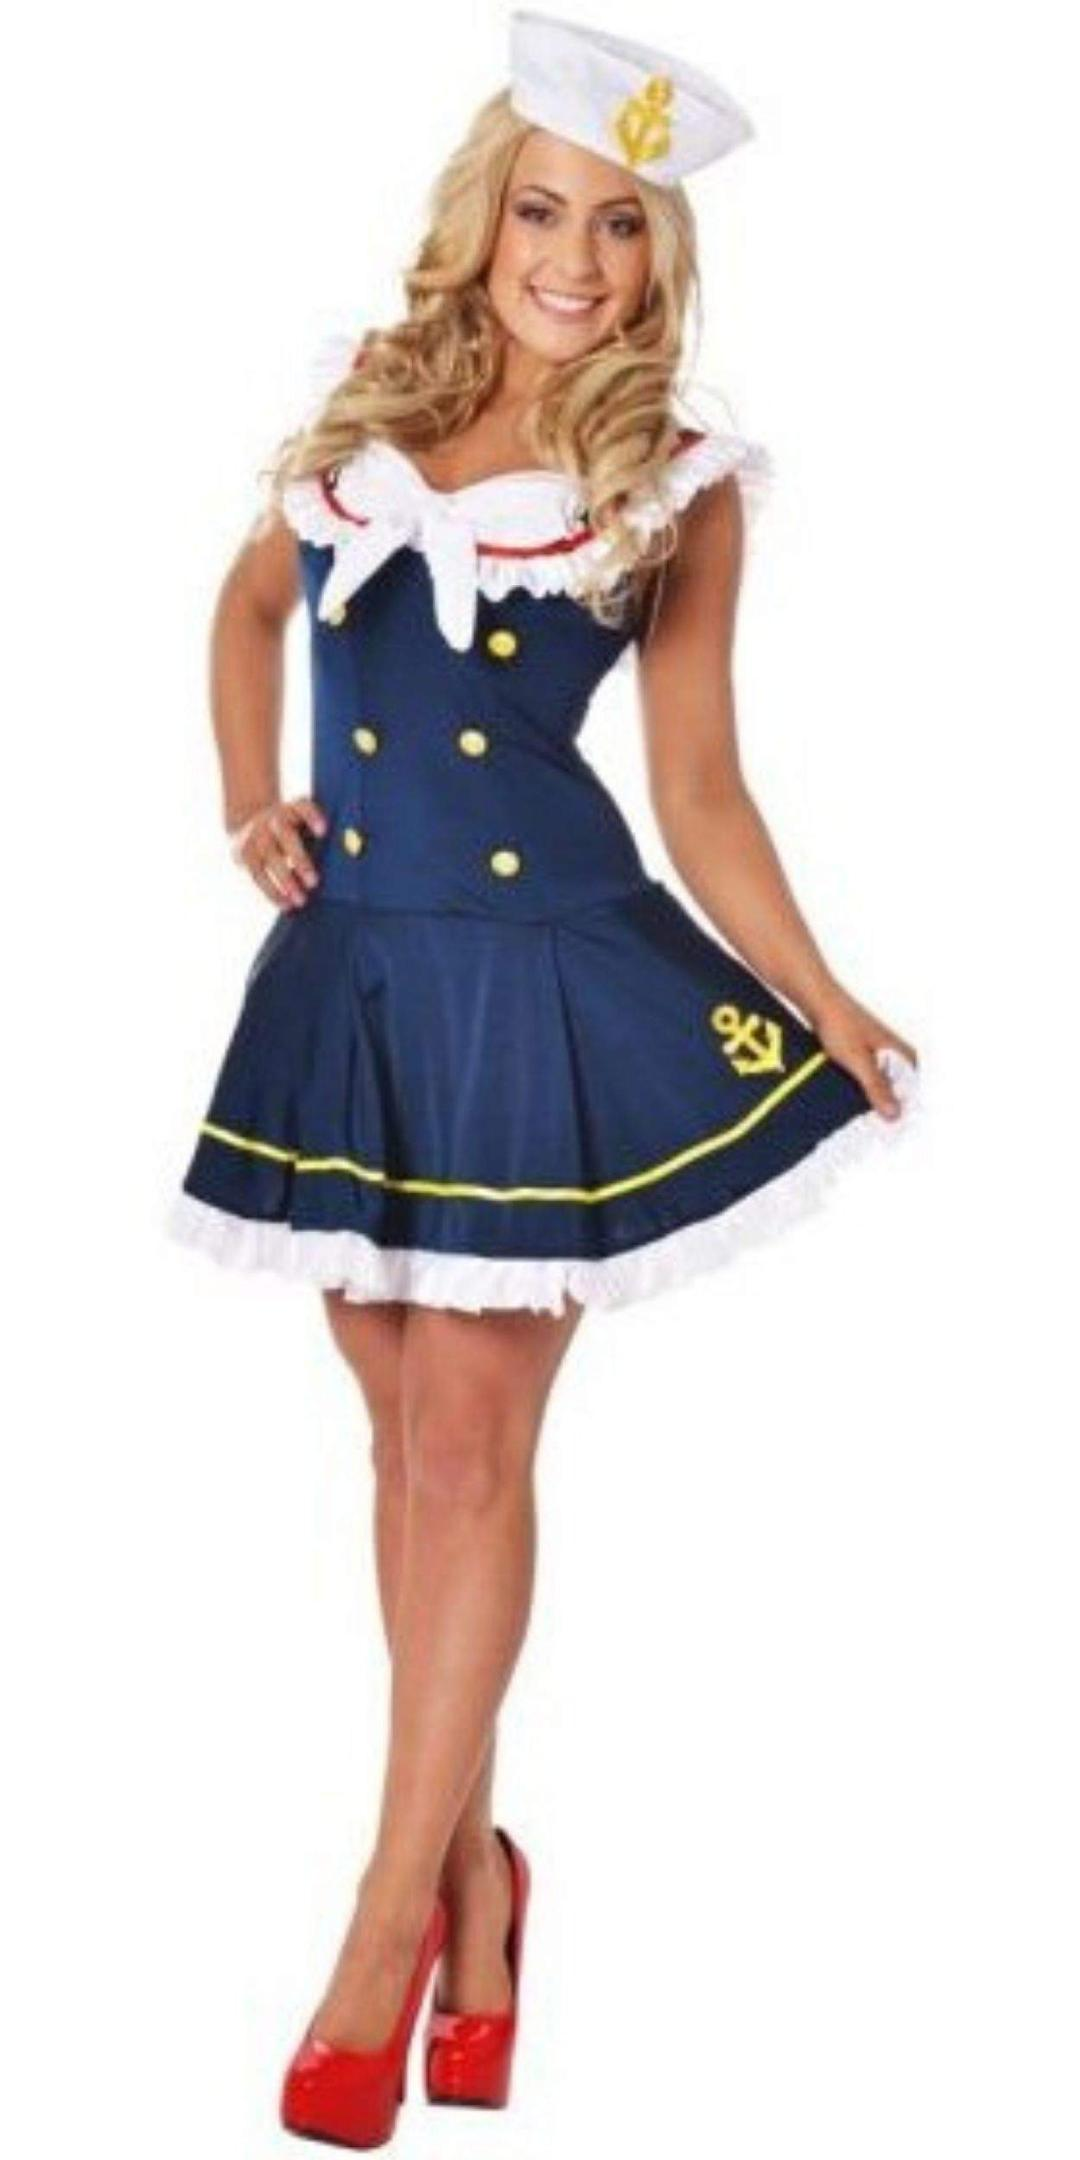 Woman in Sailor Party Costume